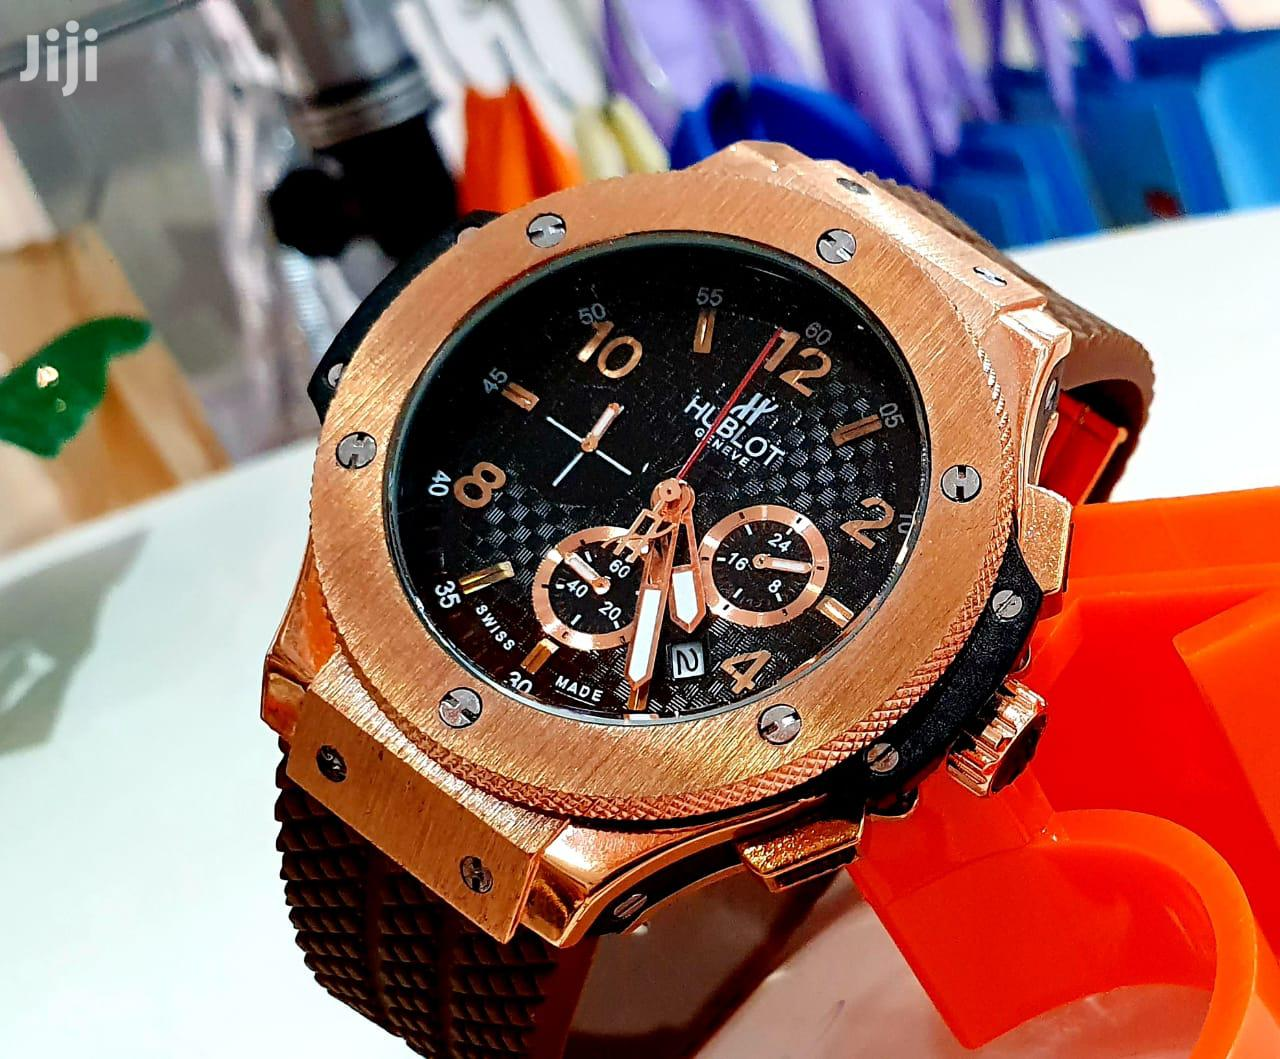 Hublot Collection | Watches for sale in Embakasi, Nairobi, Kenya